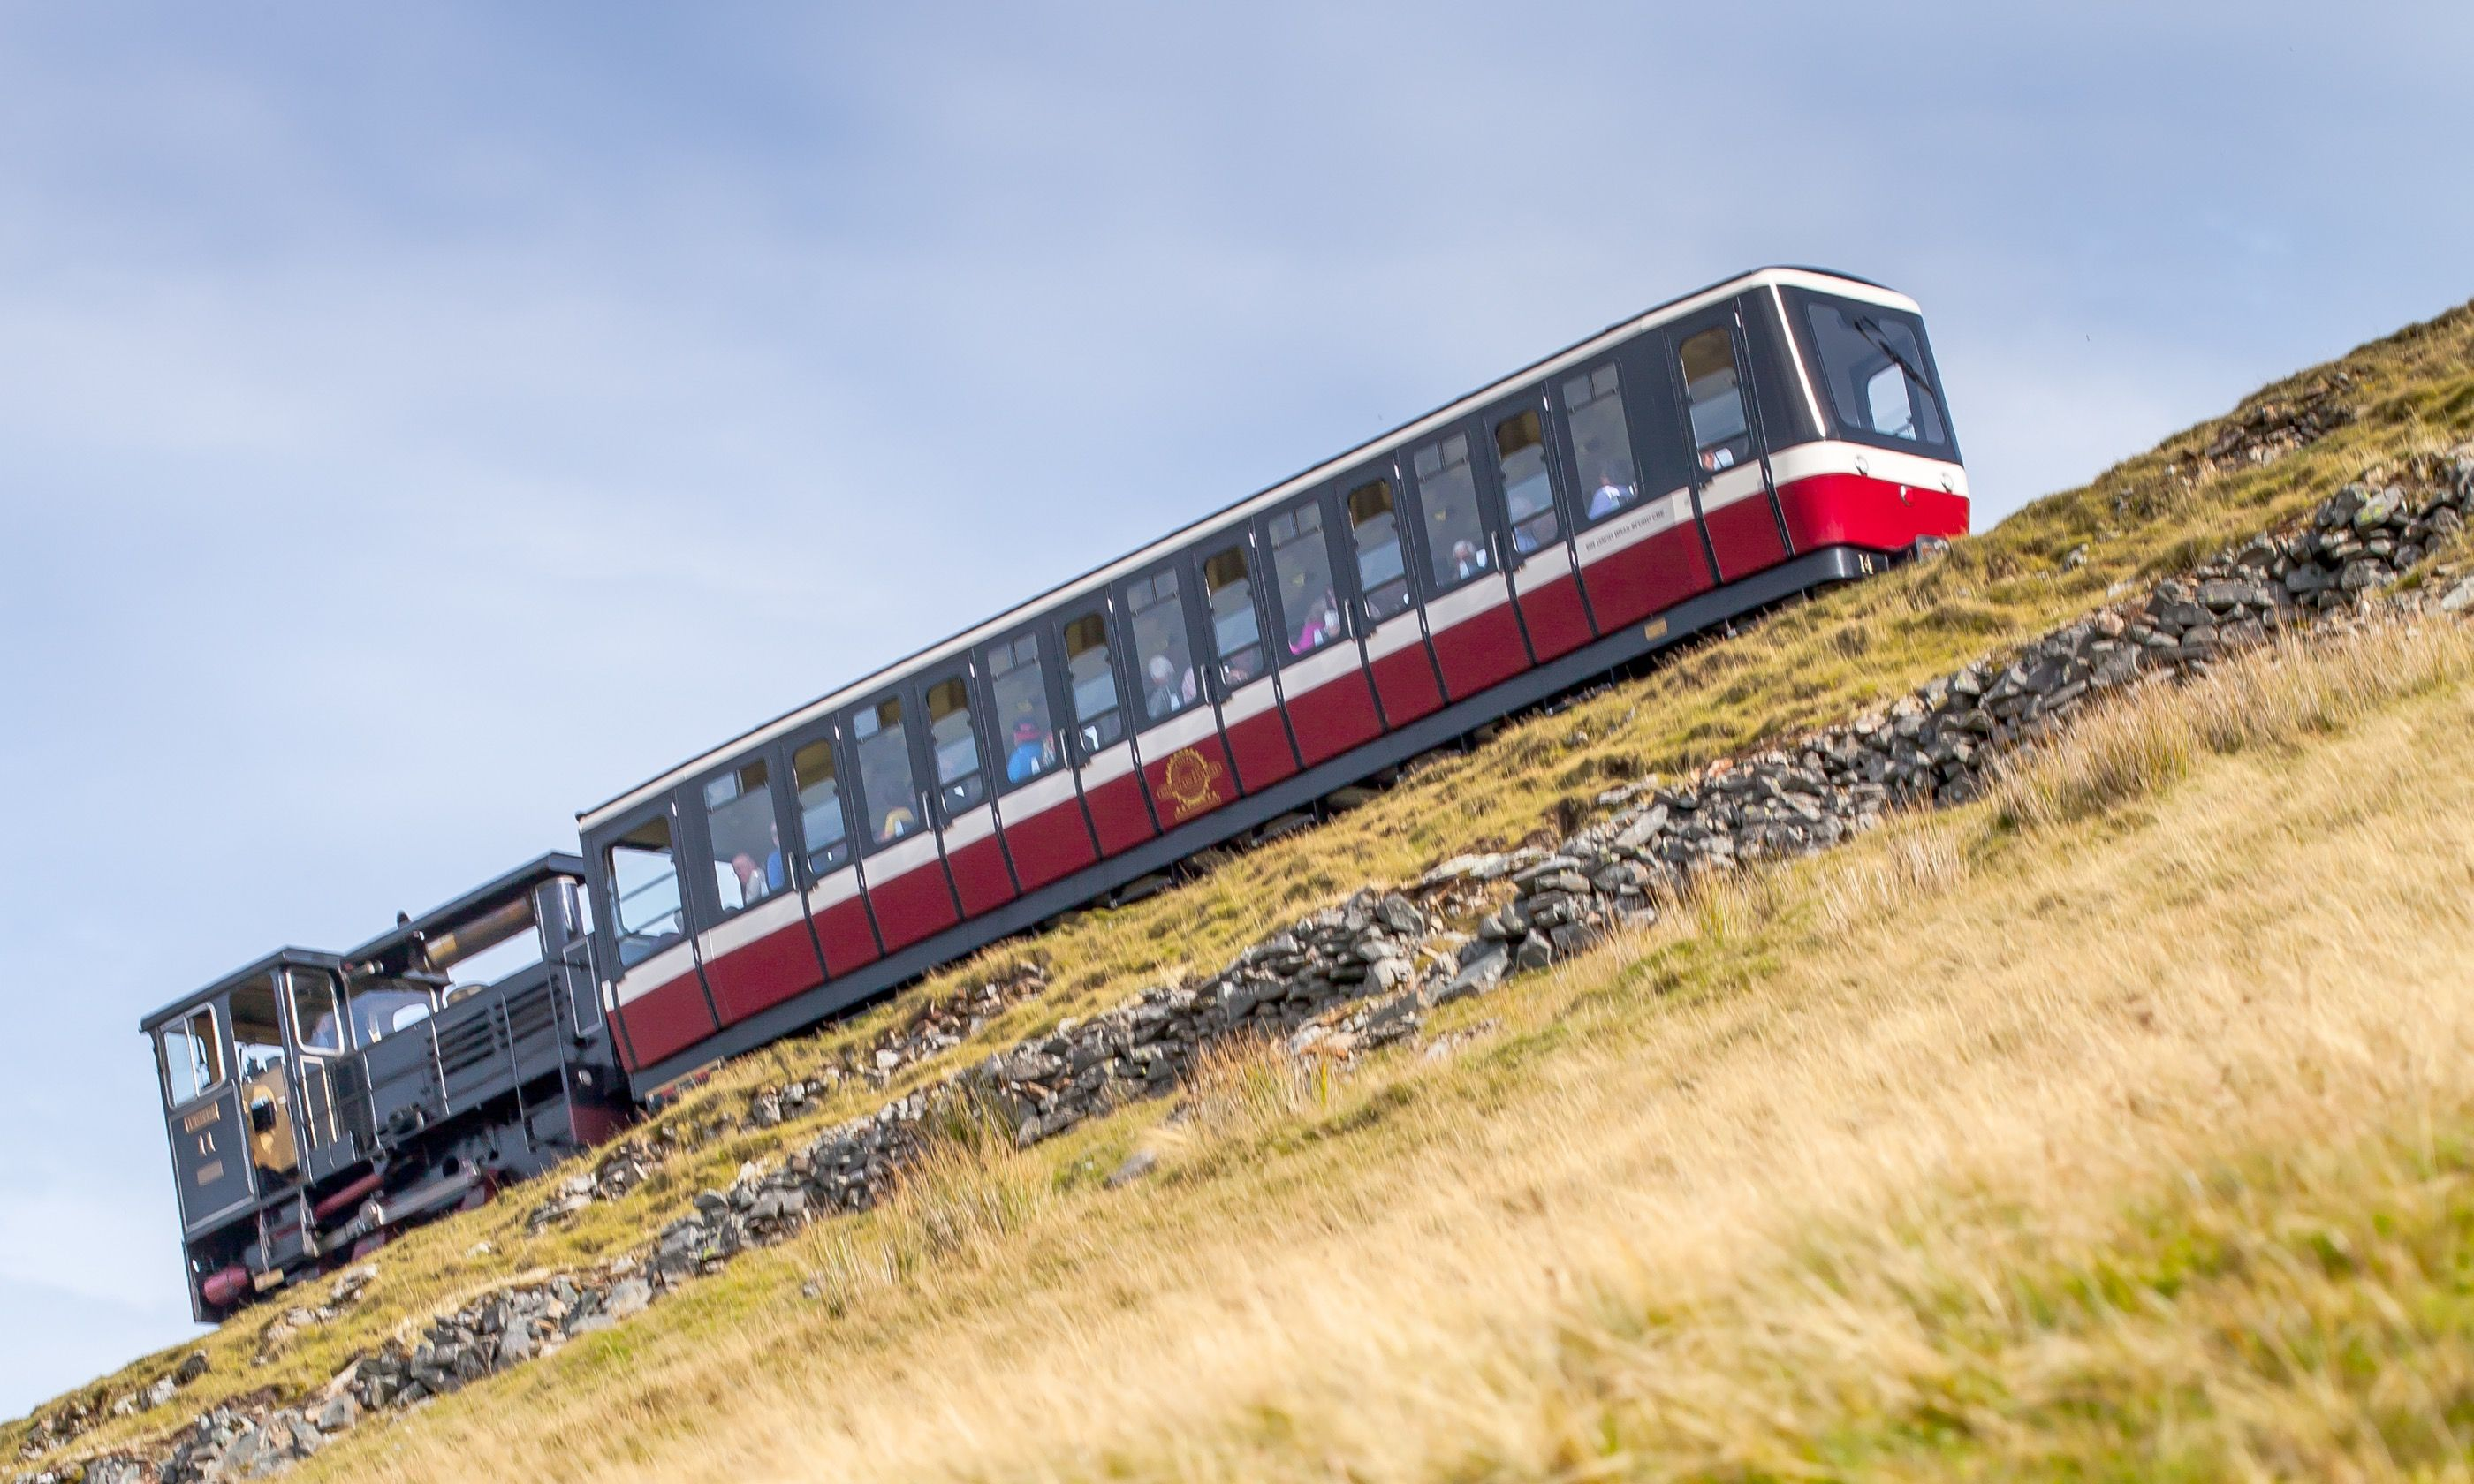 A carriage on the Snowden Railway being pushed up a steep incline (Shutterstock.com)